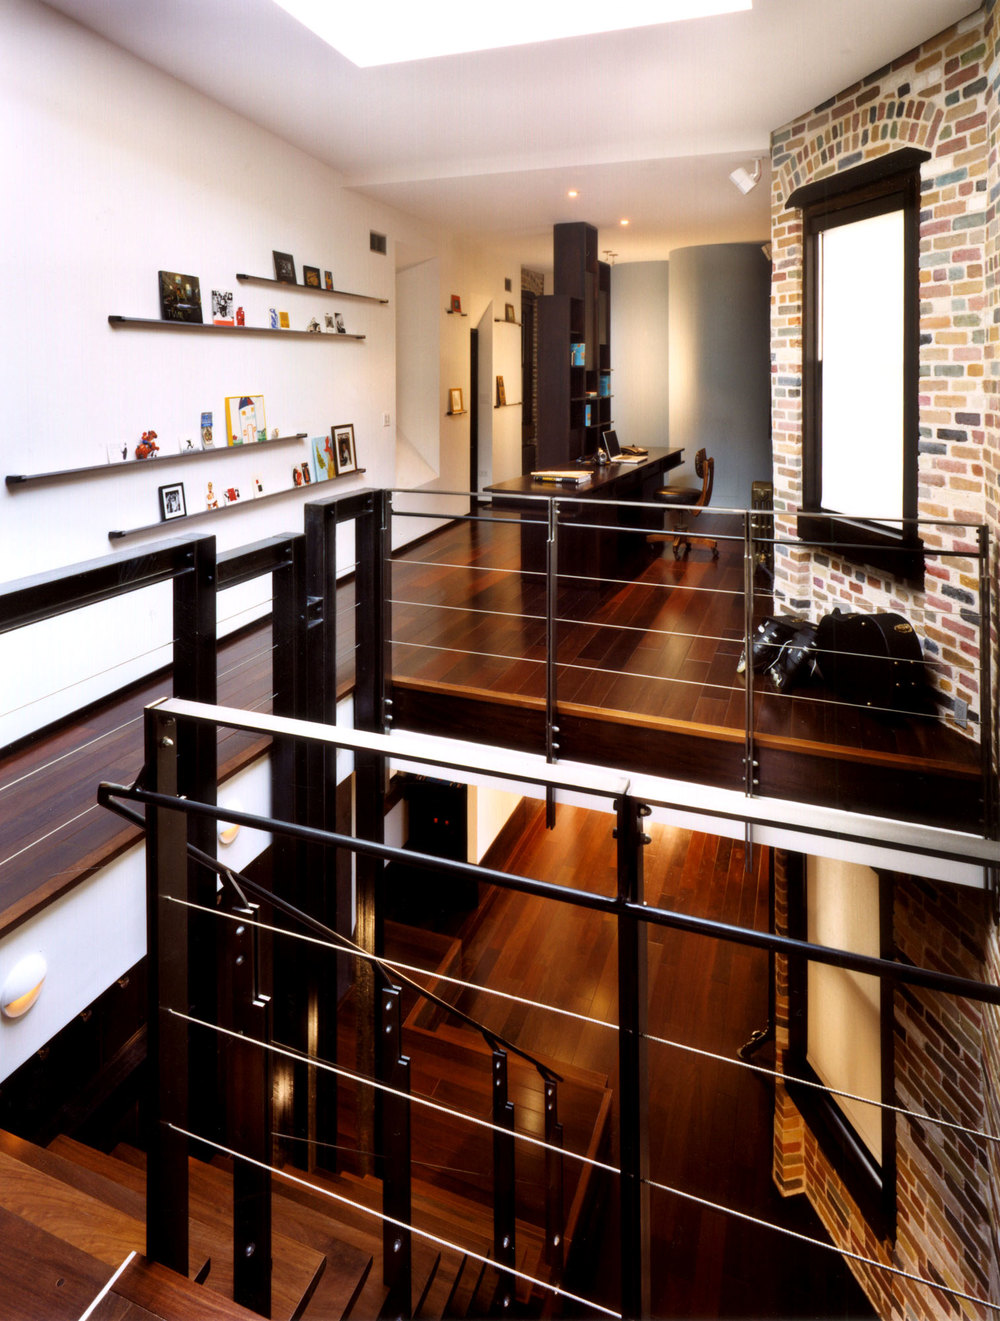 Interior view of duplex designed with custom steel railings. View into the office space featuring wood floors, exposed brick walls, and skylight.